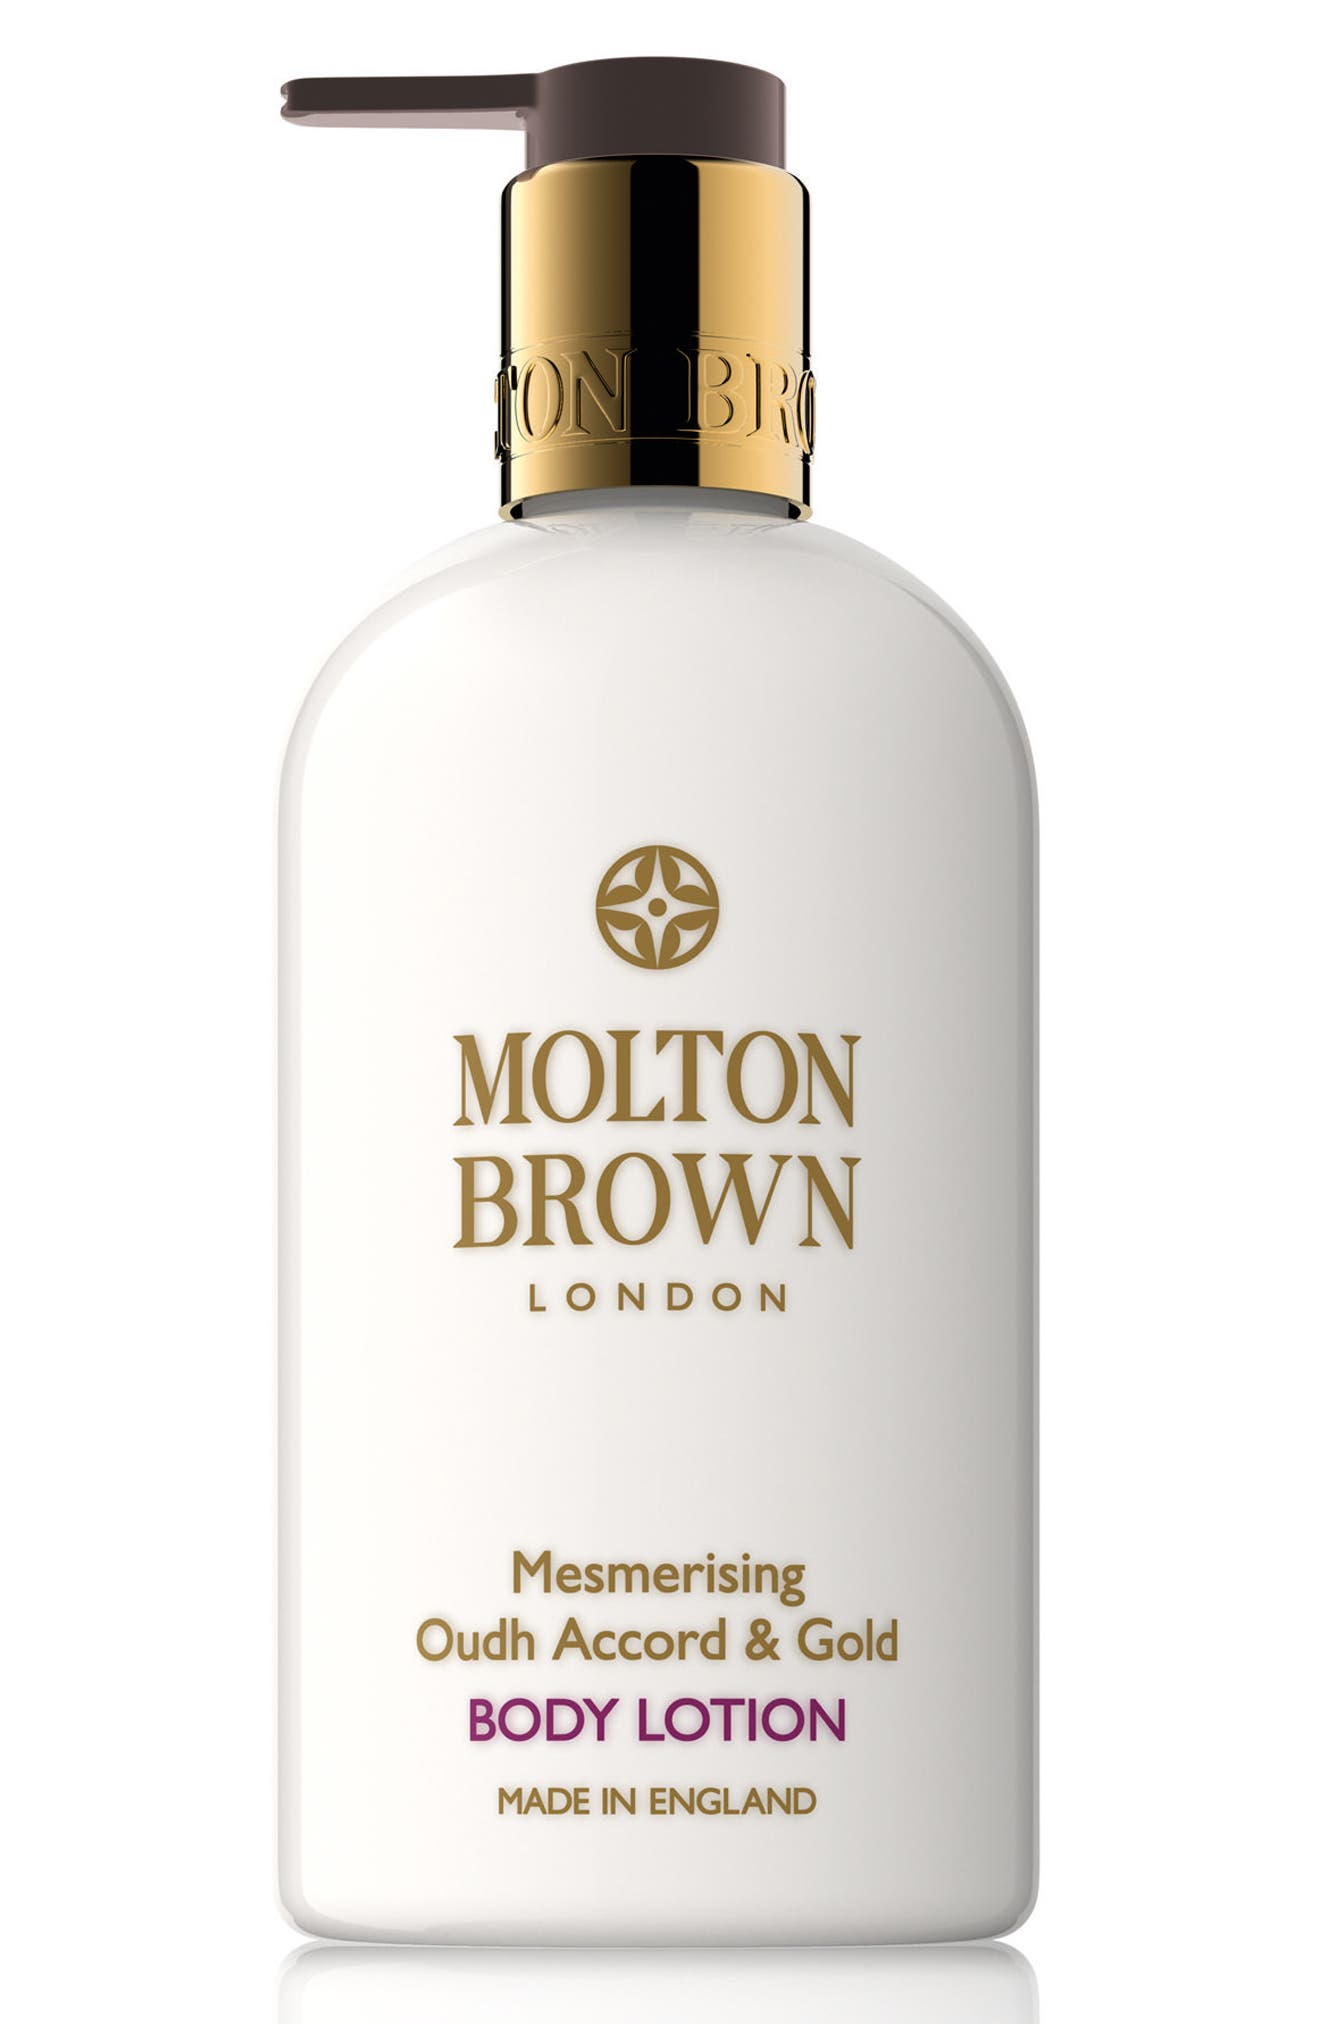 Alternate Image 1 Selected - MOLTON BROWN London 'Oudh Accord & Gold' Body Lotion